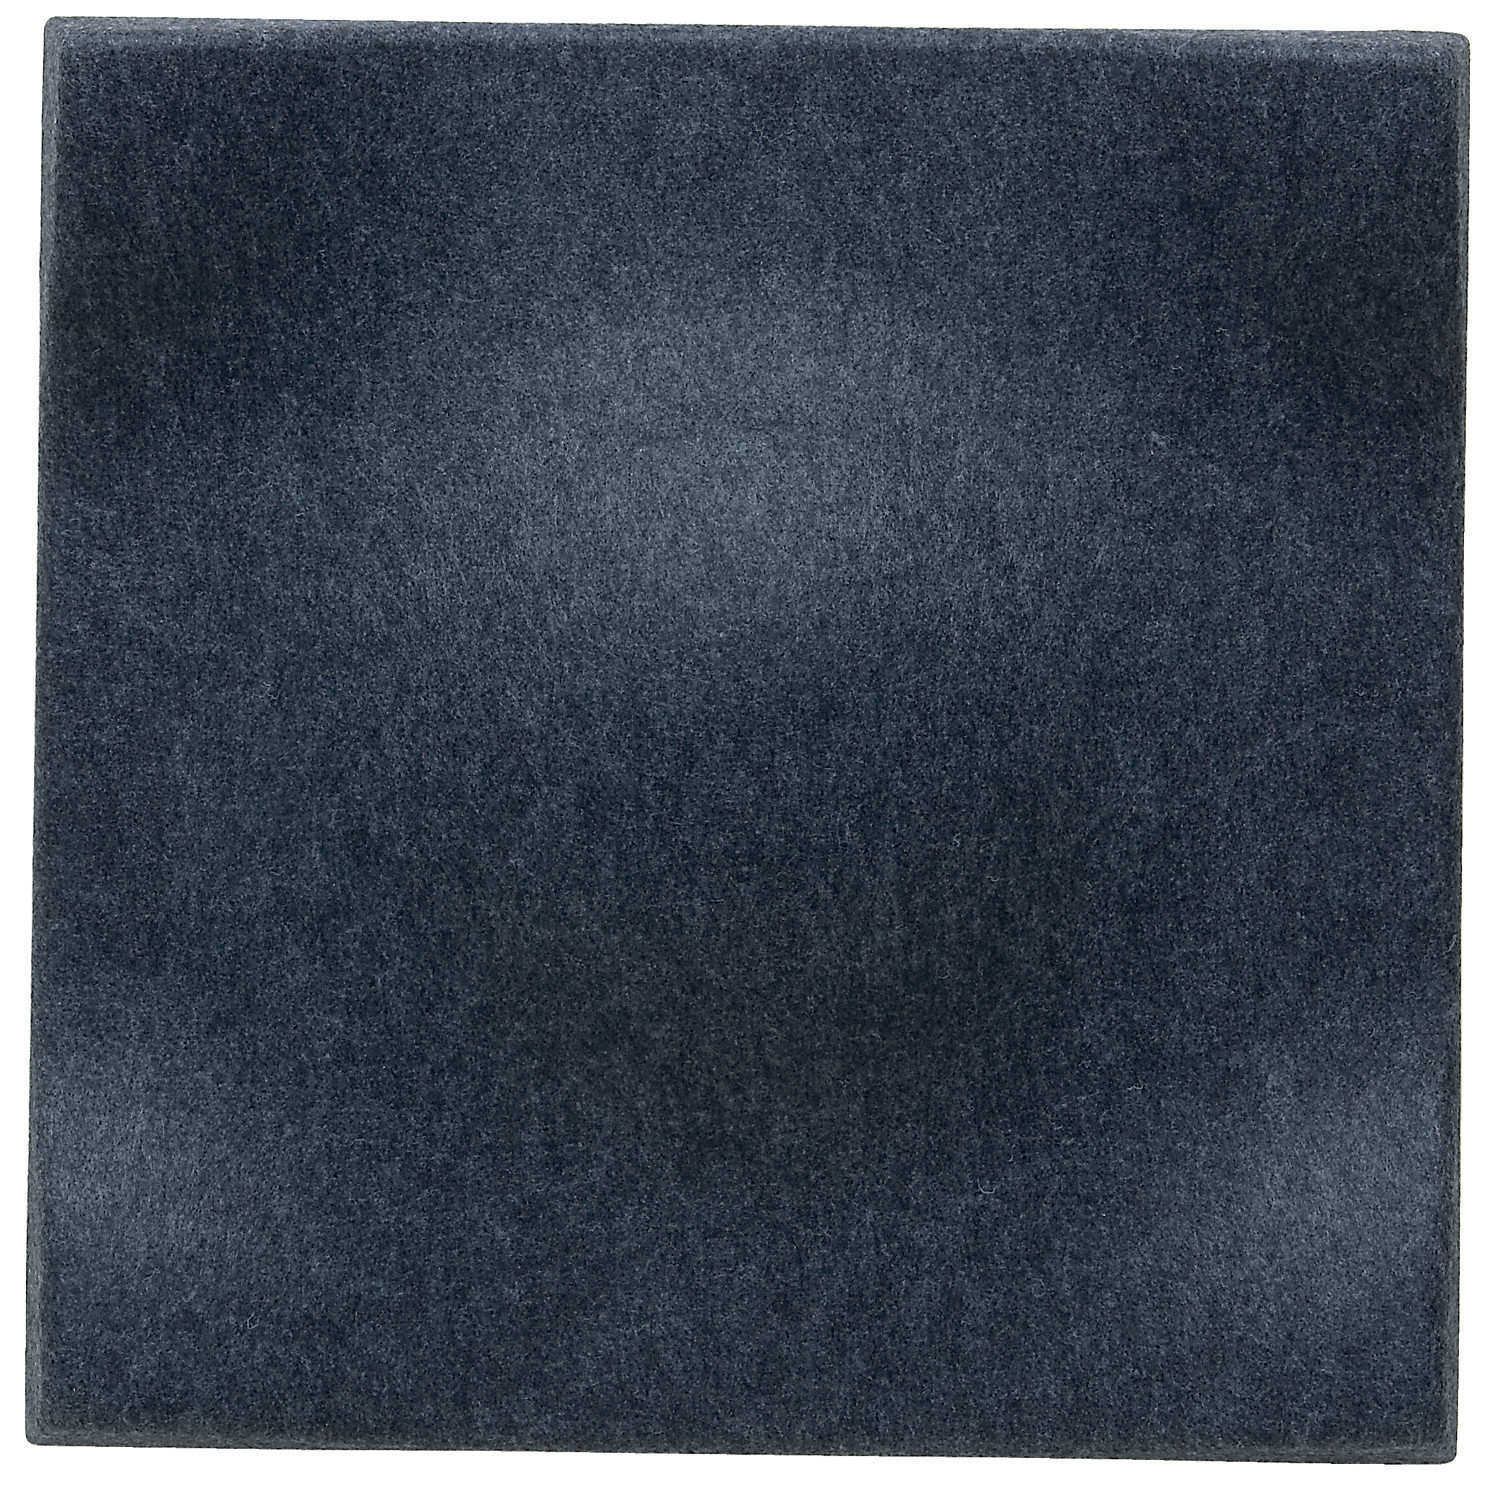 Swell Acoustic Wall Panel